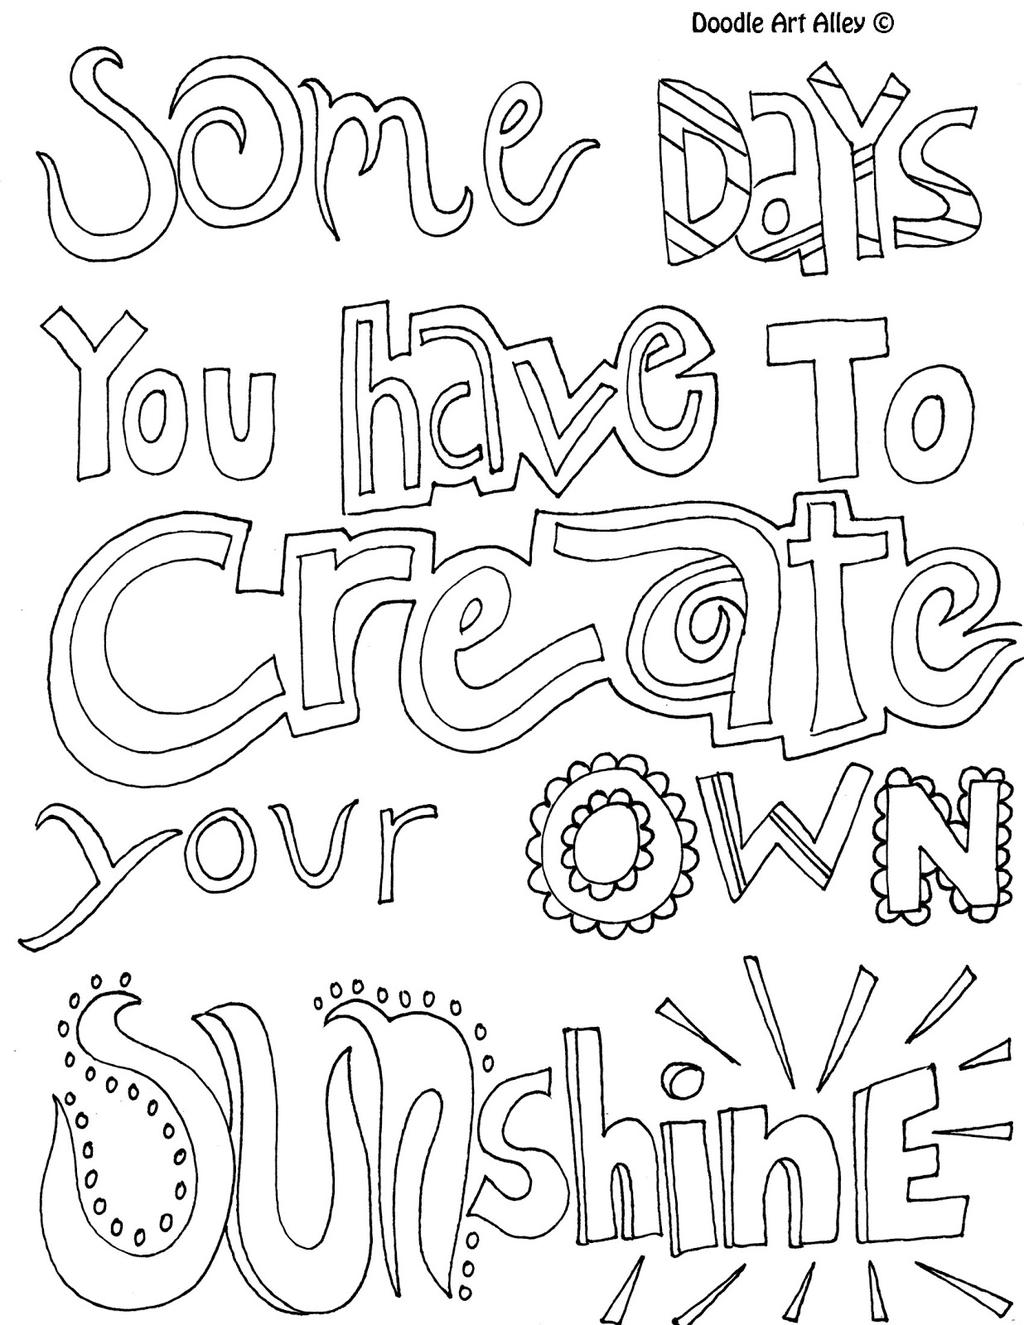 photograph regarding Printable Inspirational Coloring Pages titled Inspirational Rates Coloring Web pages 61 for Females - Free of charge